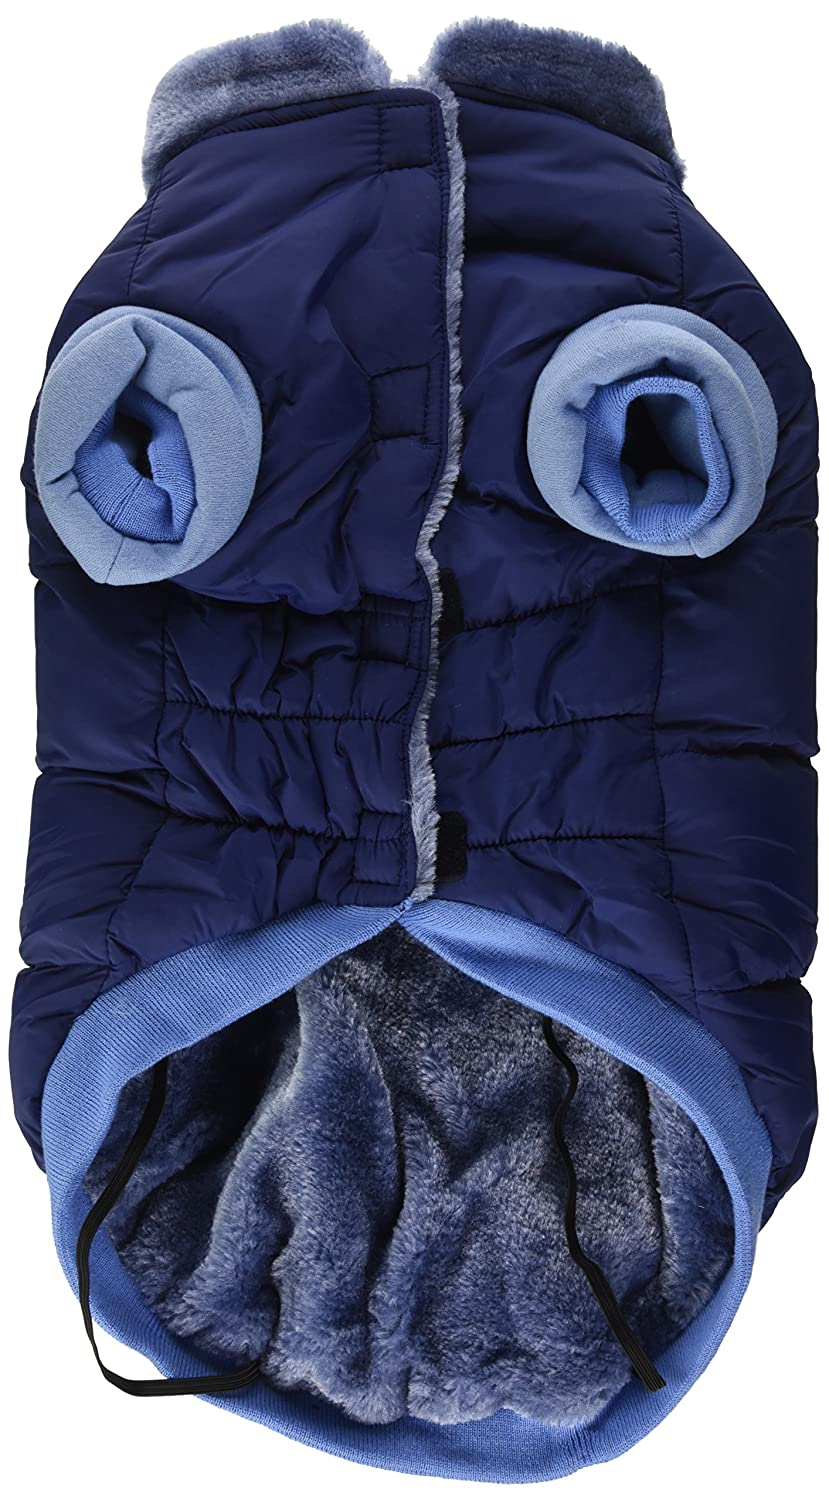 45 cm CROCI Stuffing Jacket for Dogs, bluee, 45 cm